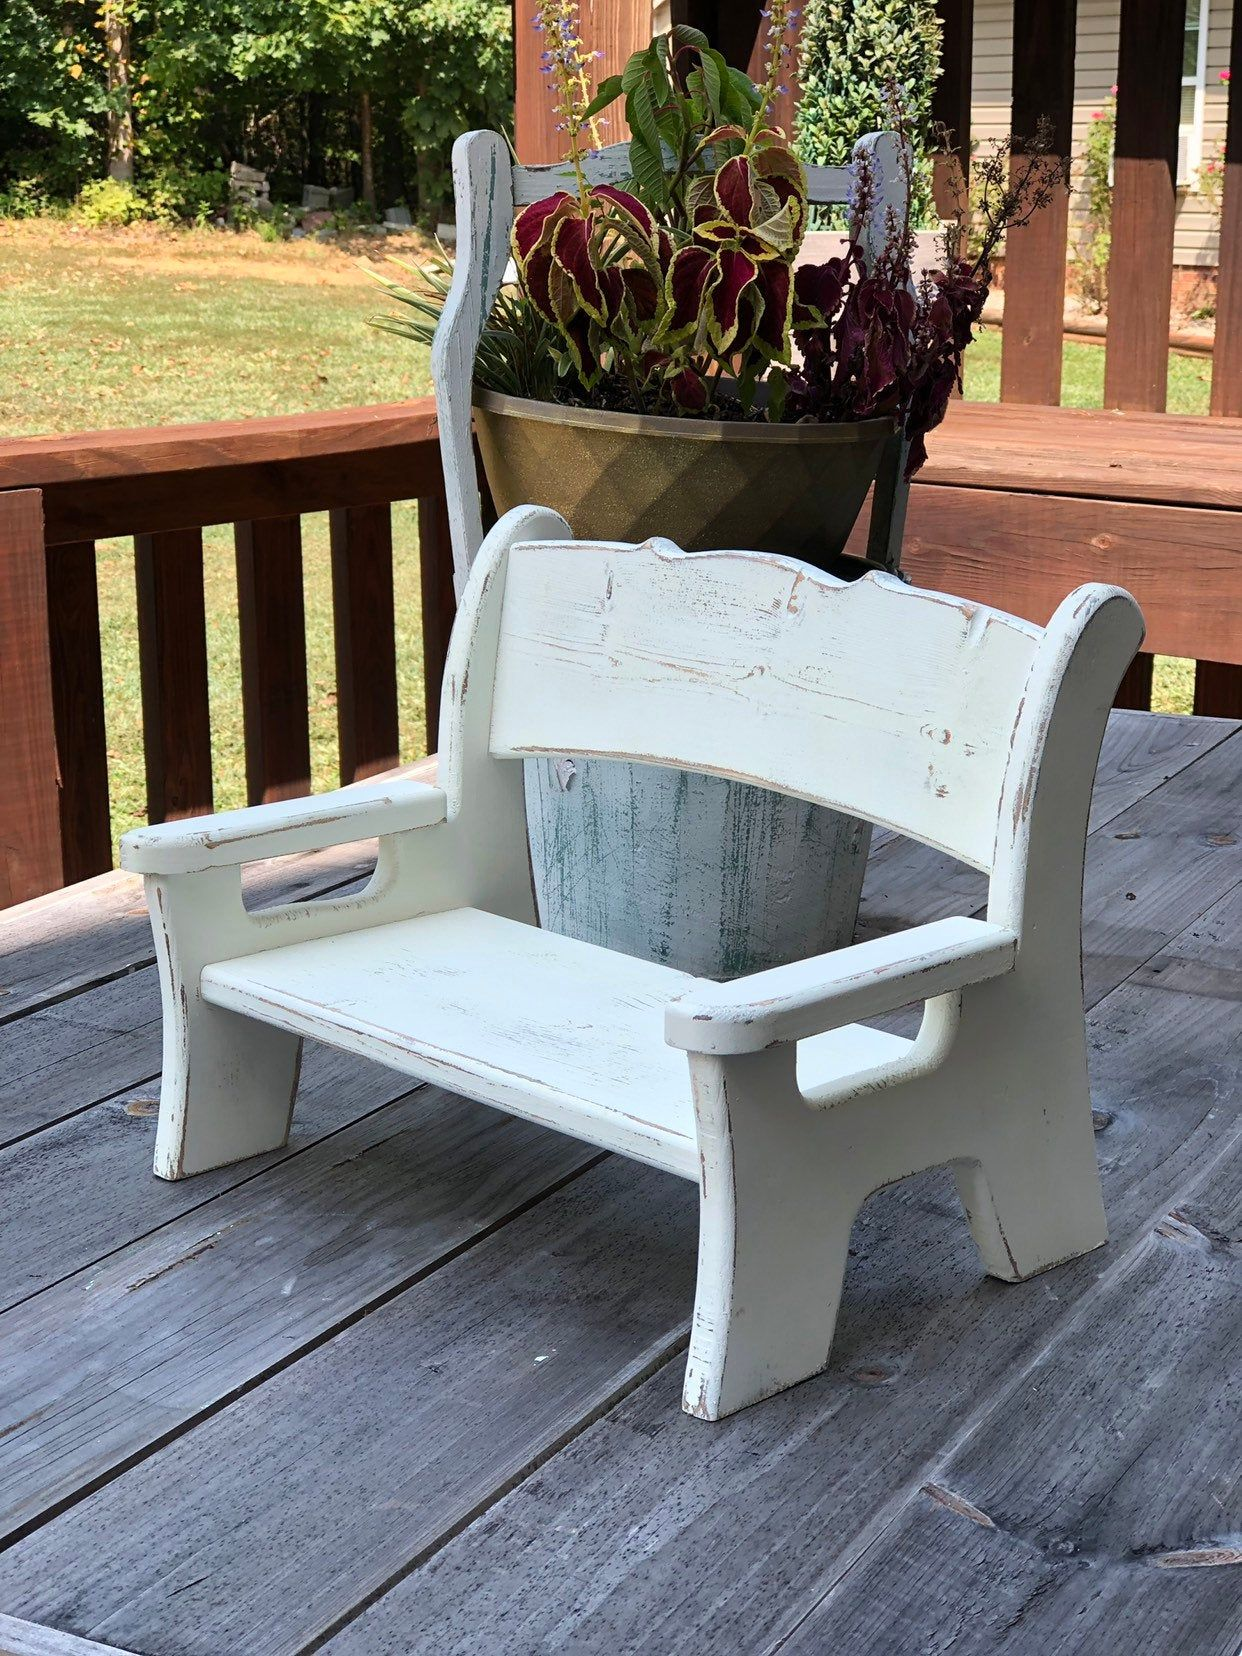 Customized Little Girls Bench 30 Shipping Childrens Furniture Wood Crafts Handcraft